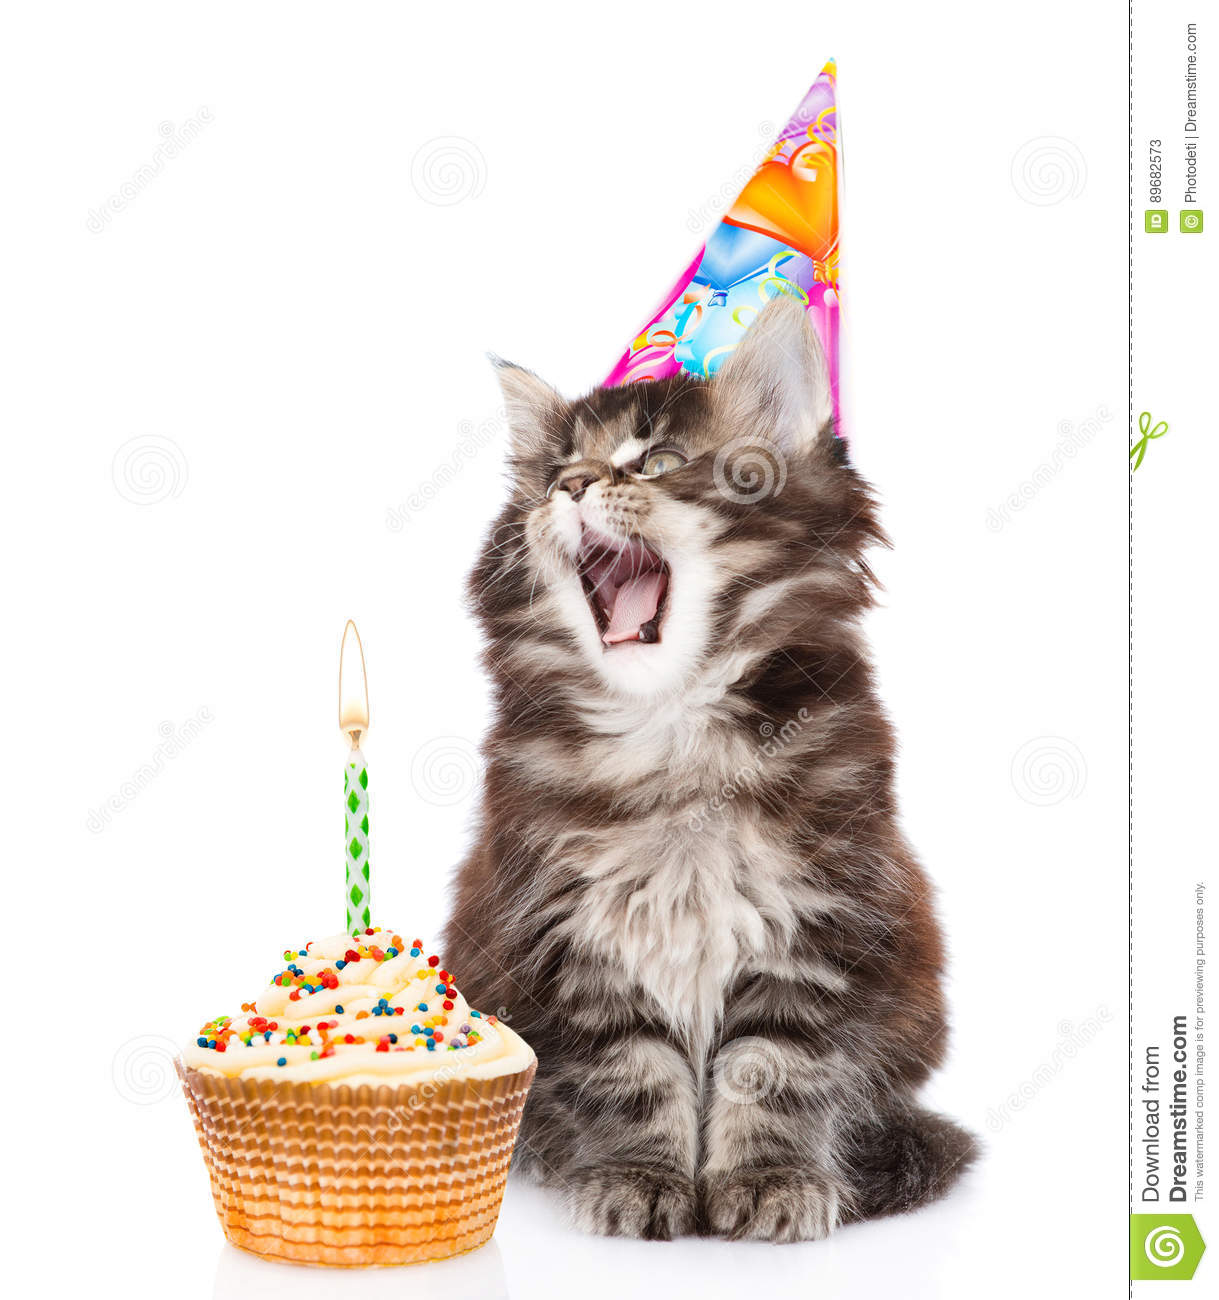 Cat In Birthday Hat Blows Out The Candles On The Cake Isolated On